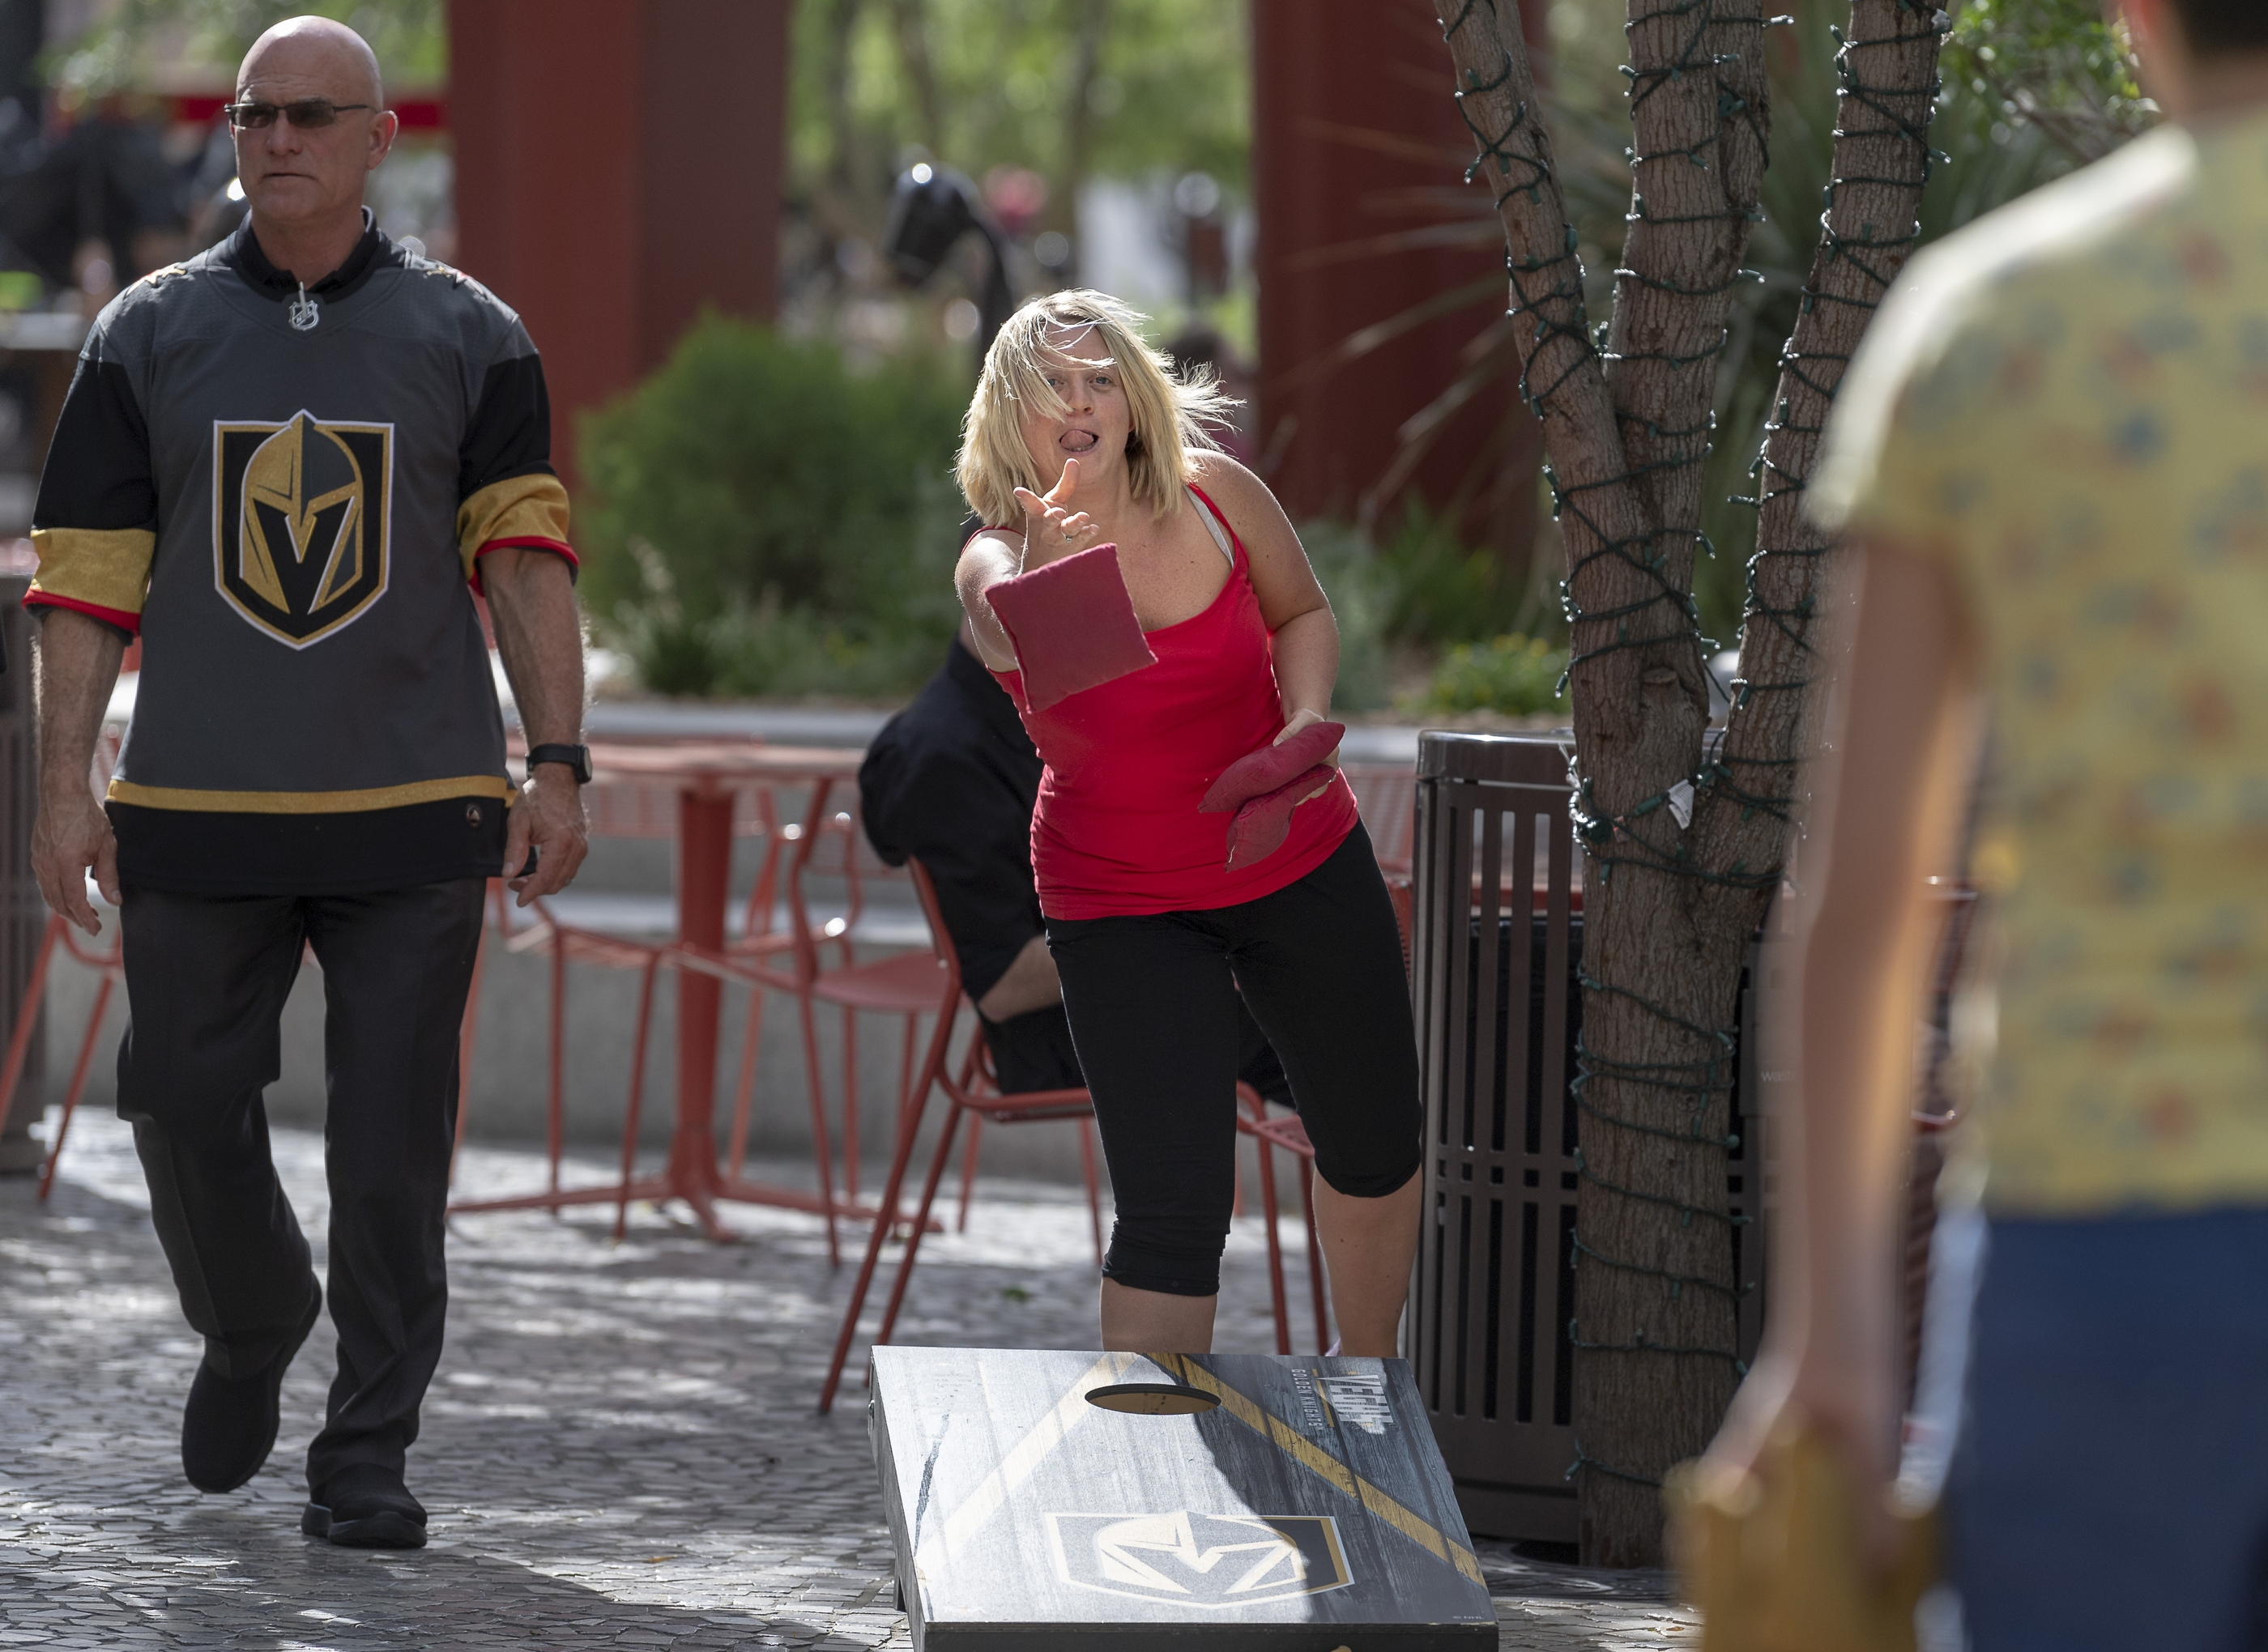 Visiting from England, Lisa Fletcher pitches the bean bag in the pre-game celebration in The Park  as the Vegas Golden Knights prepare to meet the Los Angeles Kings in the first quarterfinal game of the NHL Stanley Cup Playoffs at T-Mobile Arena in Las Vegas on Wednesday, April 11, 2018. Fletcher did not have tickets for the game.  CREDIT: Mark Damon/Las Vegas News Bureau